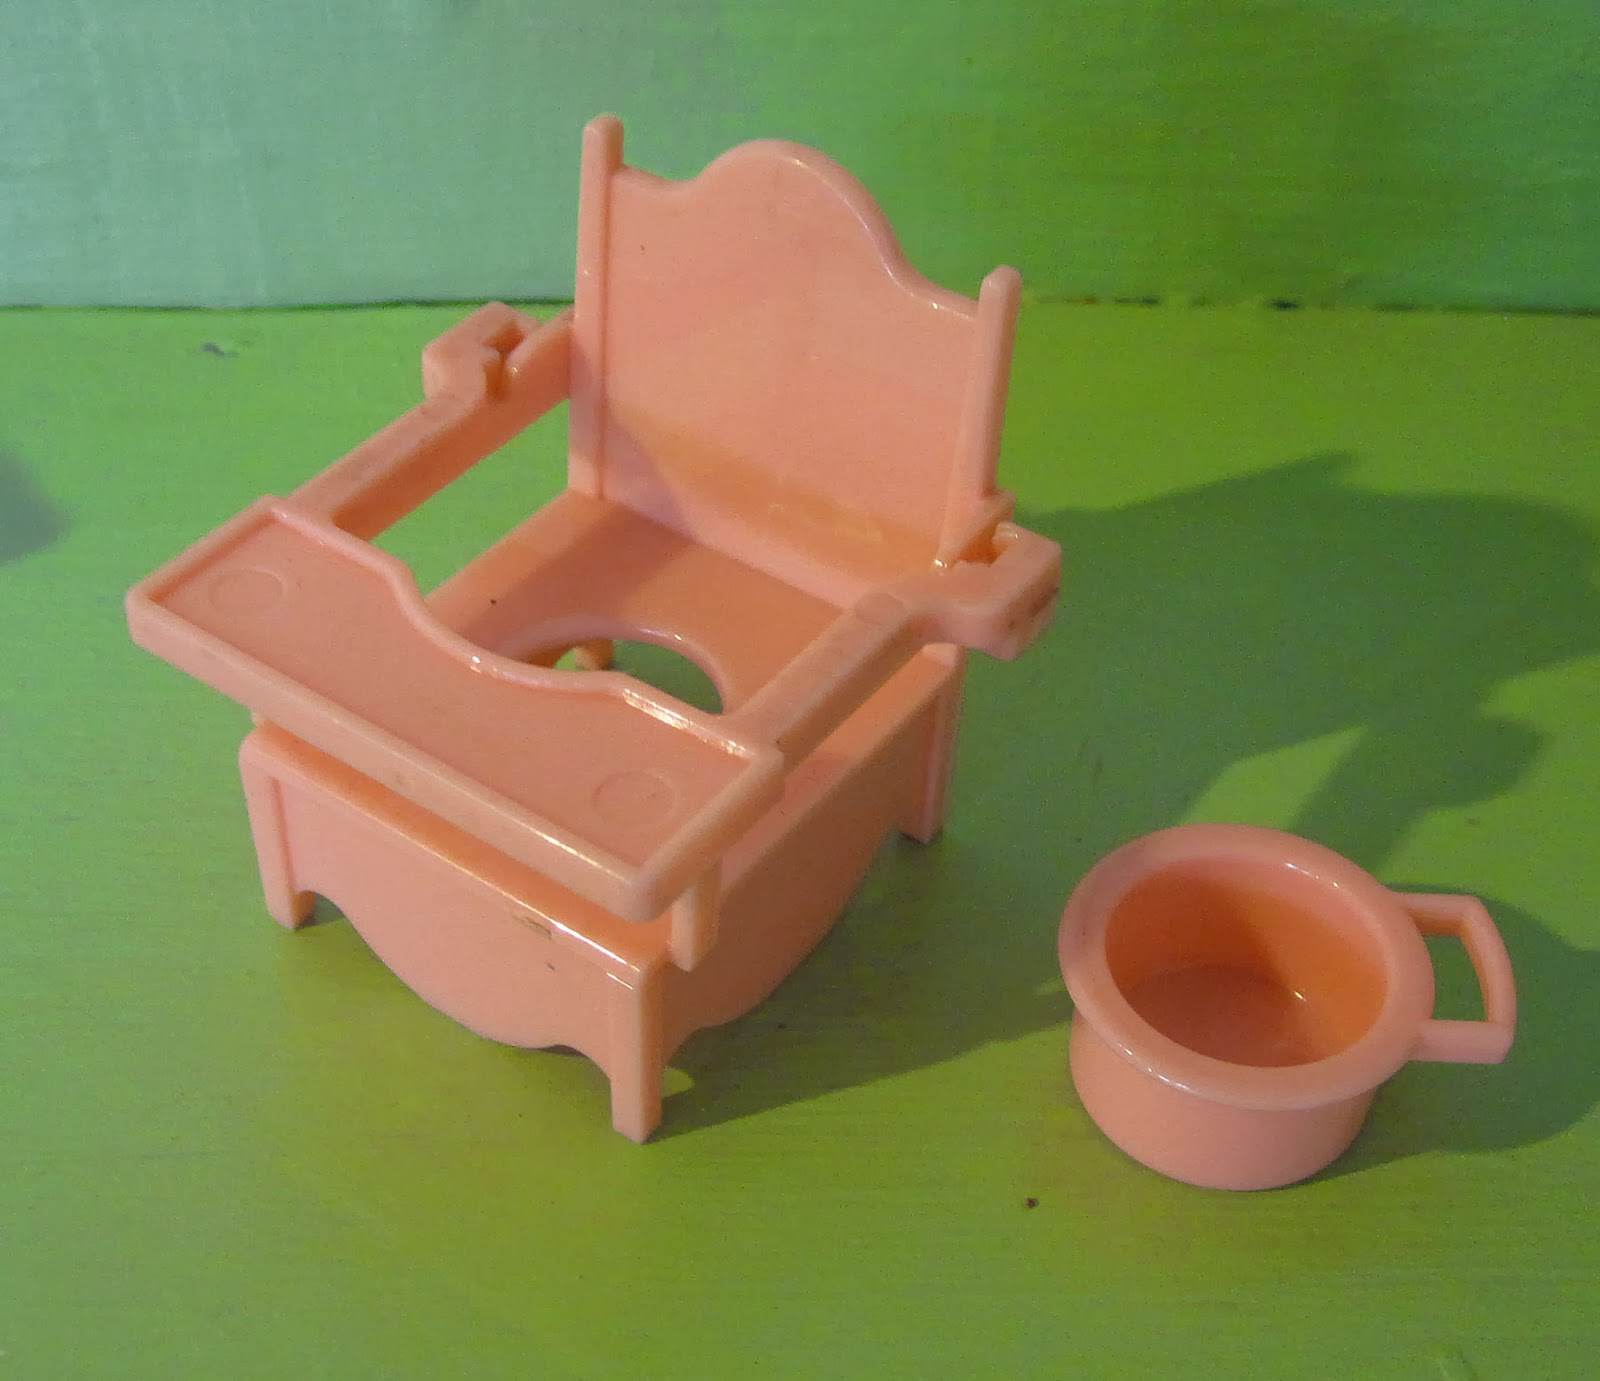 cheap potty chairs best gaming chair with footrest amy bradley designs dollhouses and quilt diva pin give away